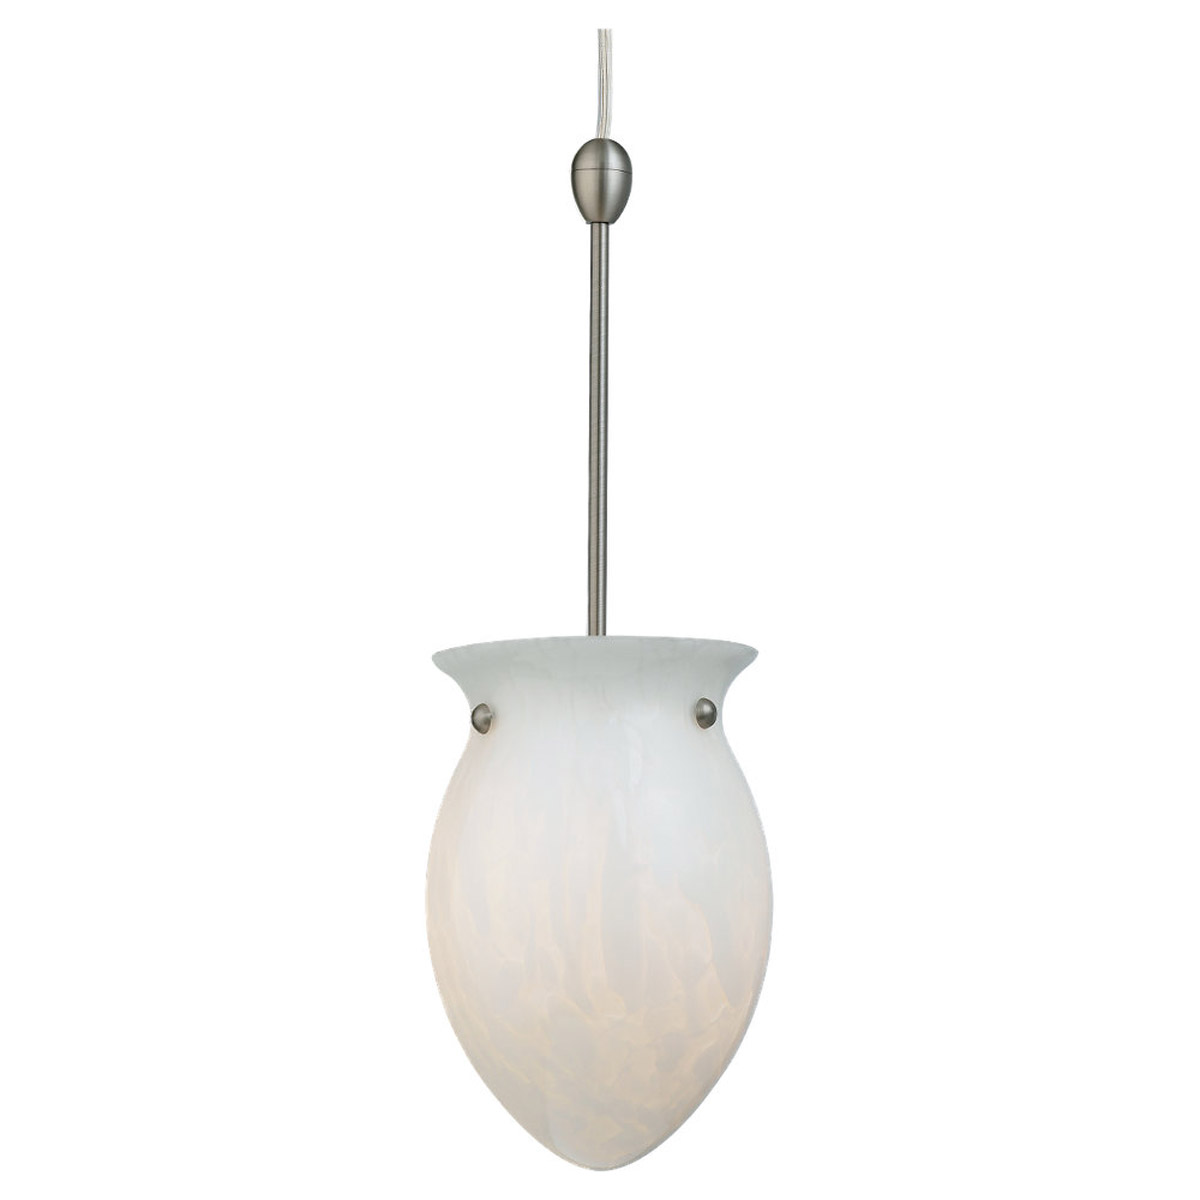 Sea Gull Lighting Carlisle 1 Light Rail / Ceiling Pendant in Ivory Flake 94965BLE-6039